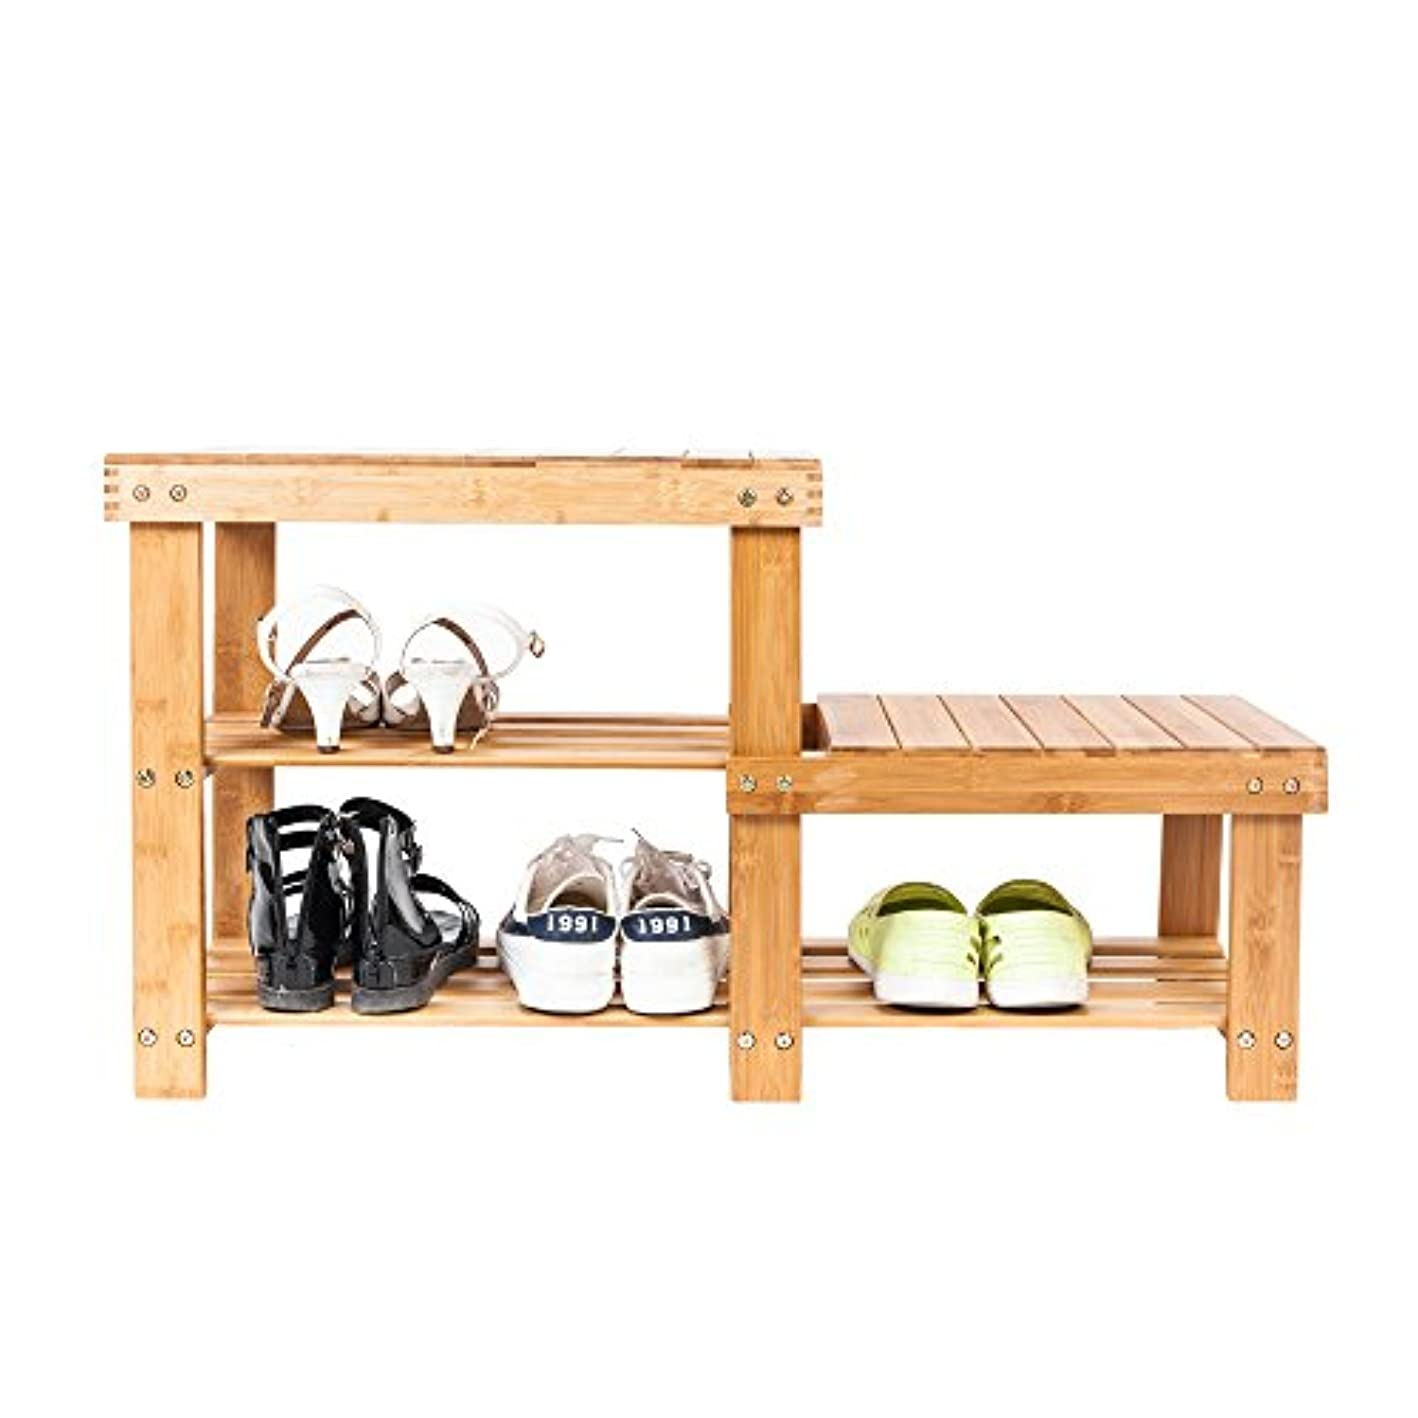 Bamboo Shoes Rack Bench 3 Grid Shoe Storage Chair Entryway Organizer Shelf Wood Color